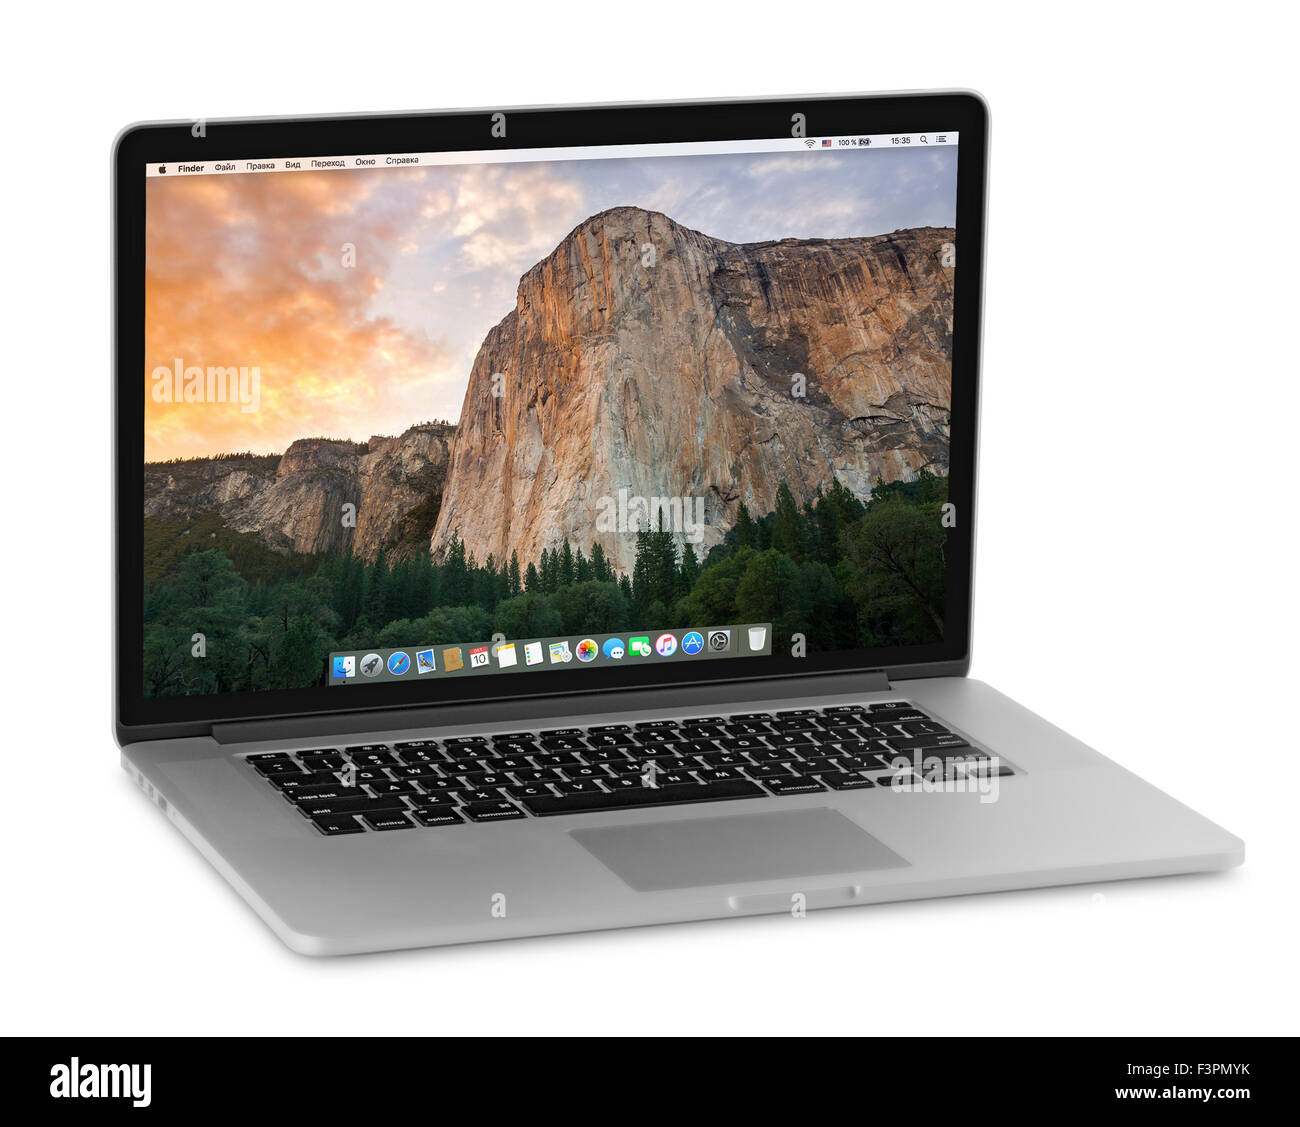 MacBook Pro Retina is a laptop developed by Apple Inc. - Stock Image